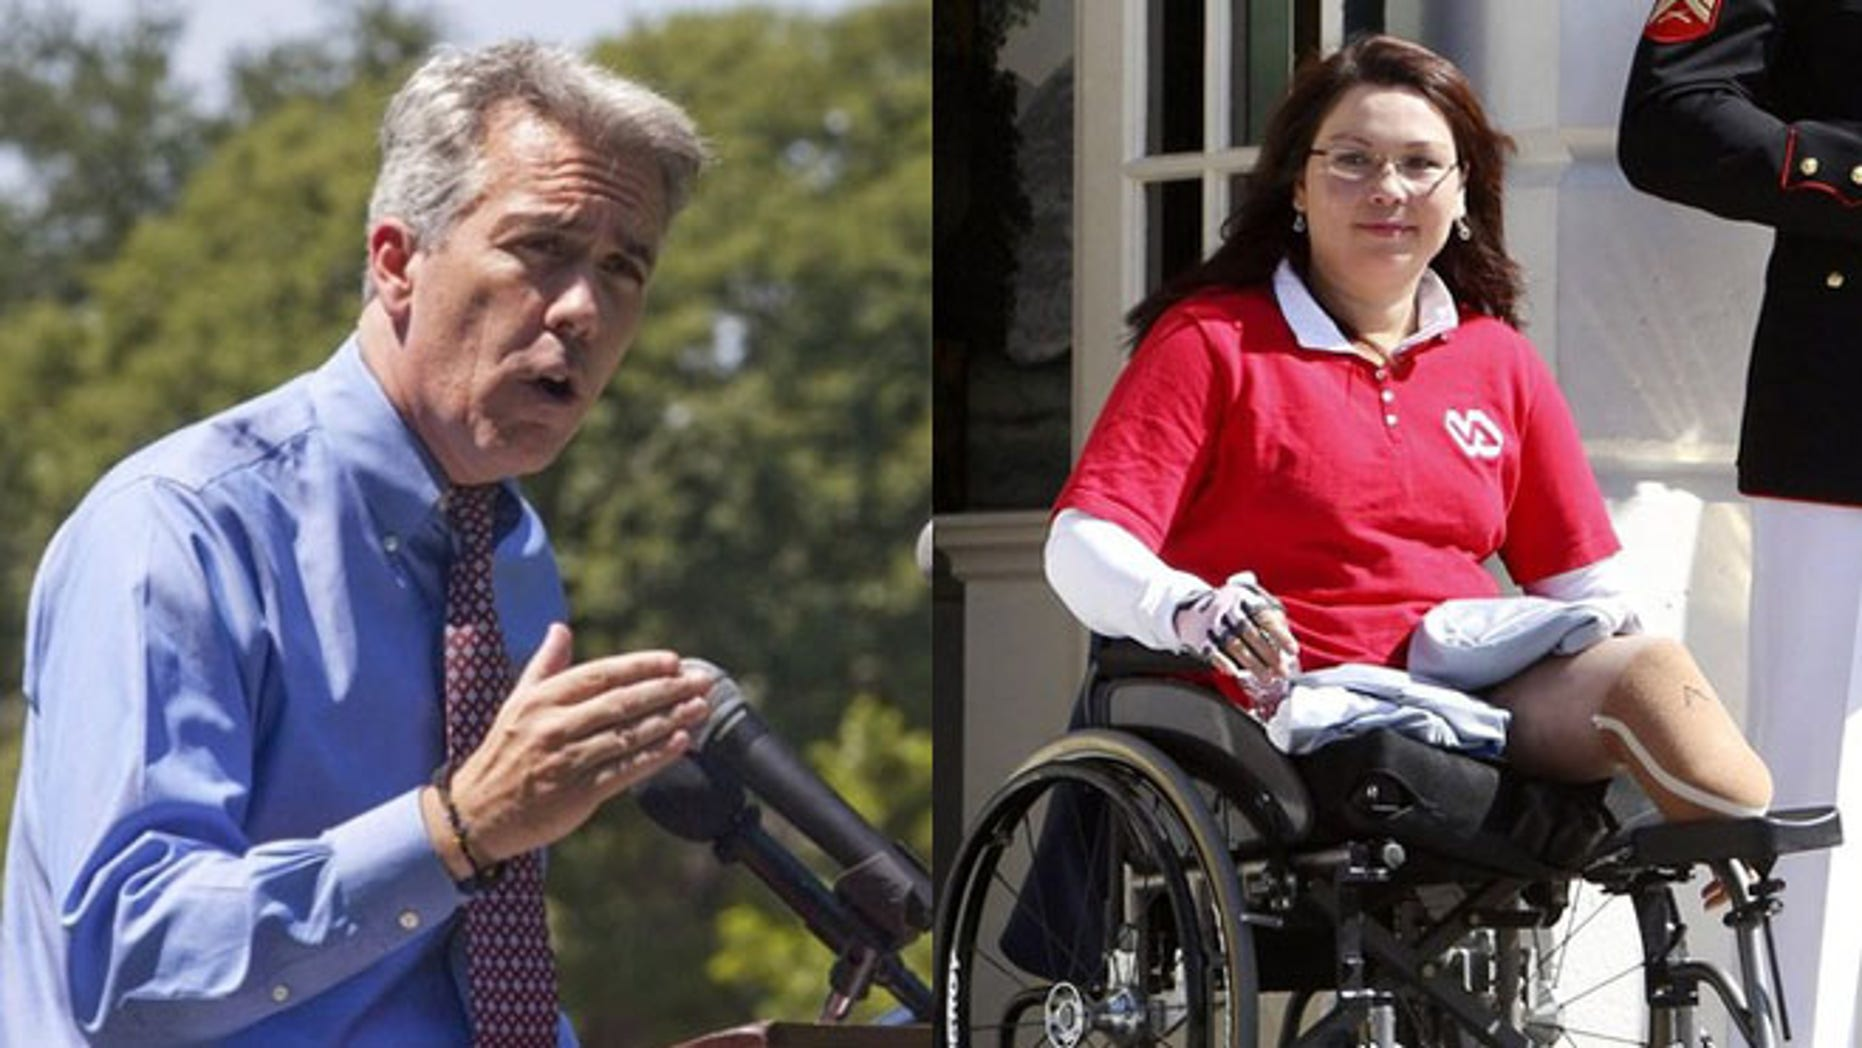 Shown here are Rep. Joe Walsh, left, and Democratic rival Tammy Duckworth.